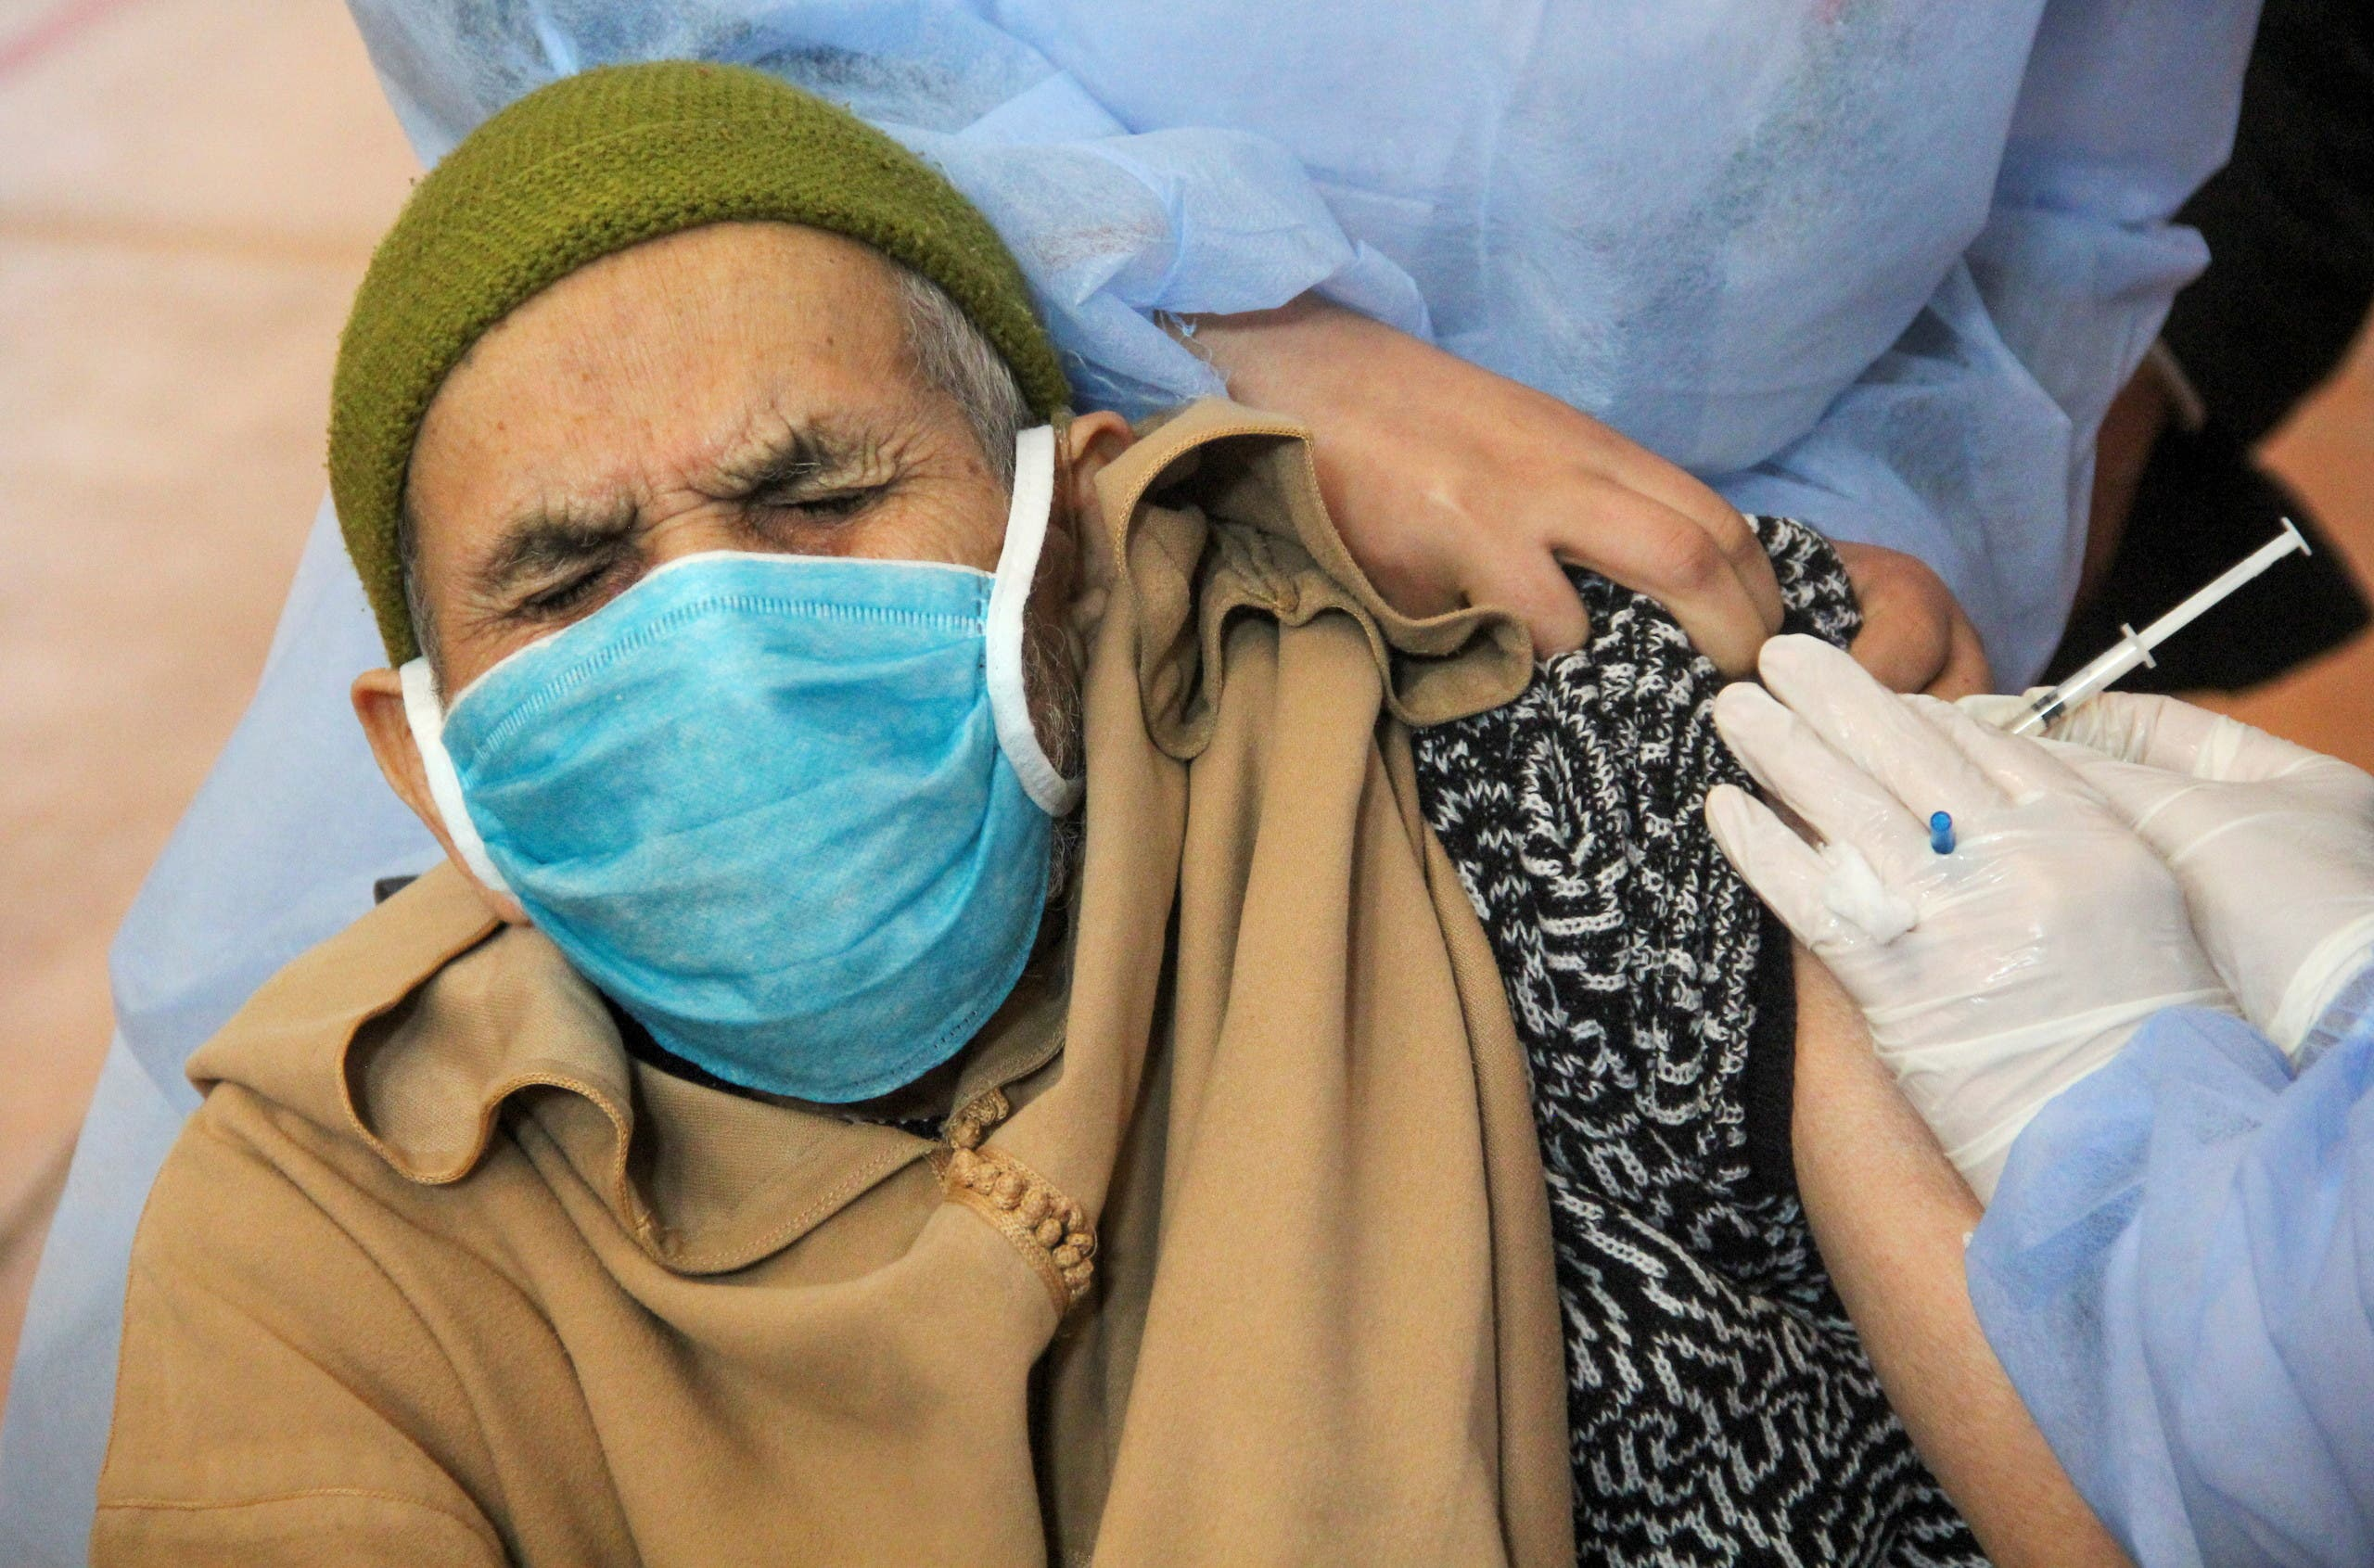 An elderly man receives the COVID-19 vaccine during a national coronavirus vaccination campaign, in Sale. (Reuters)